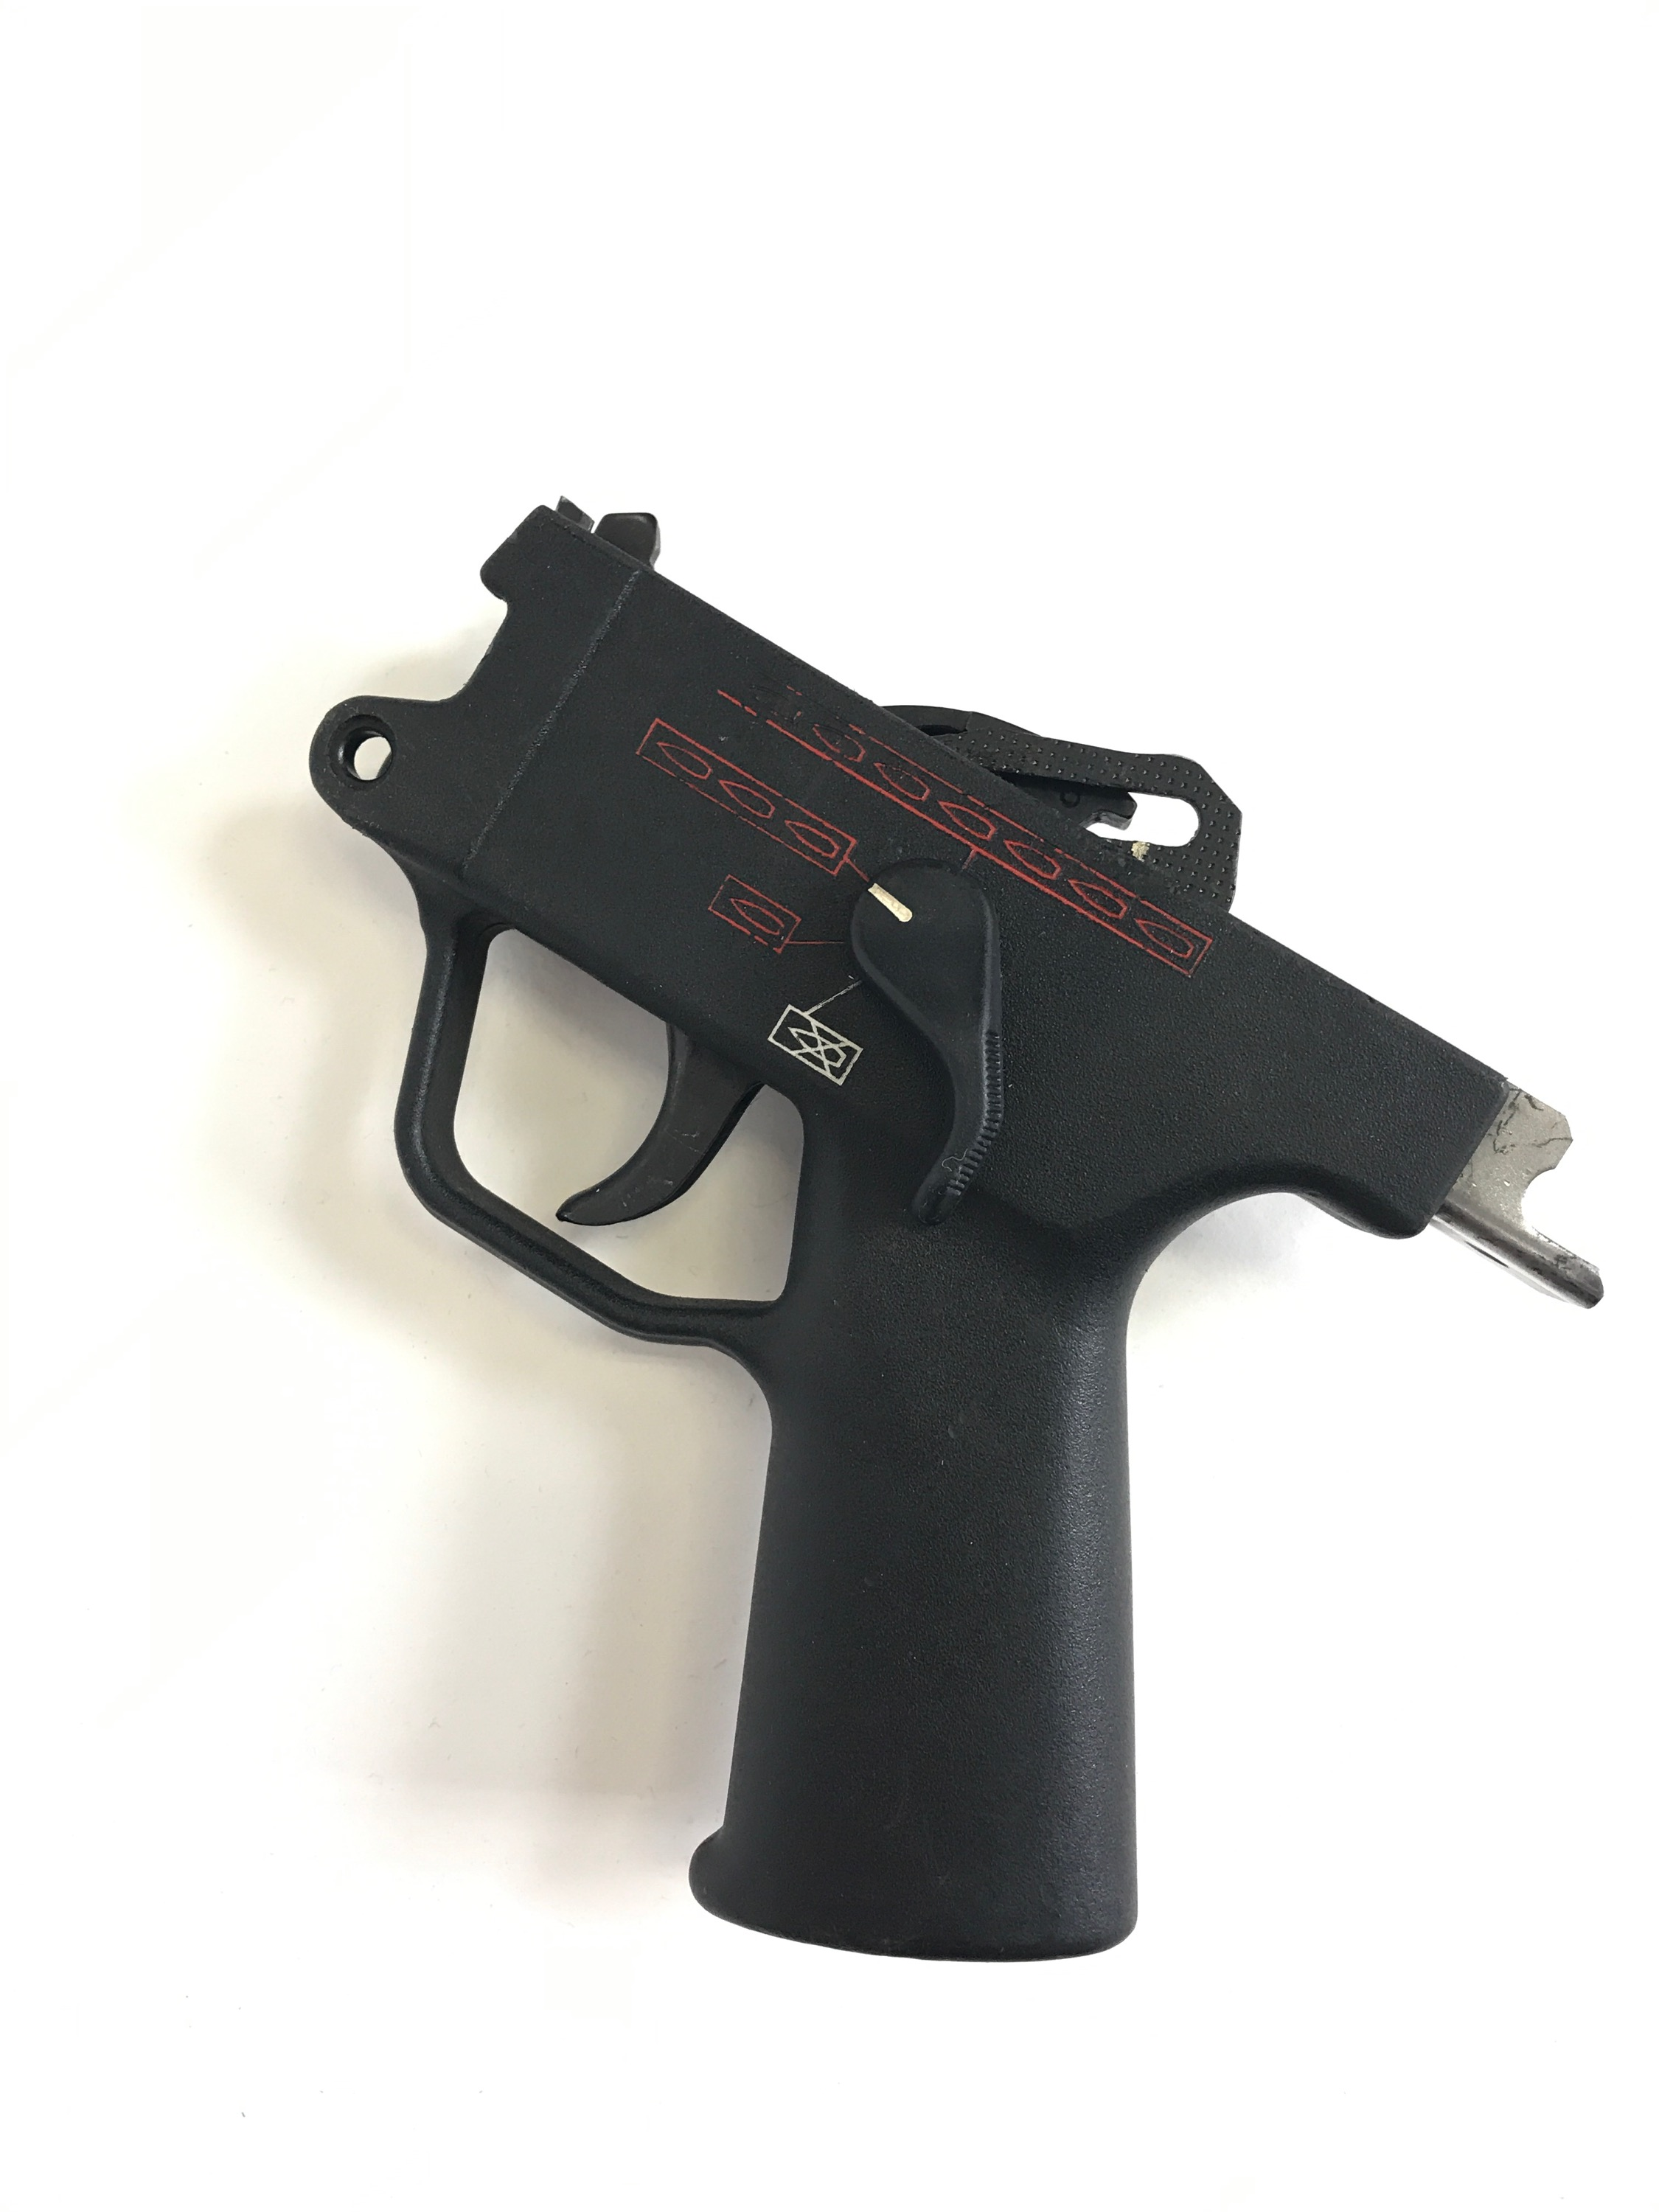 WTS: MP5 4 Position Trigger Group-577310868_01_1555798854915.jpg